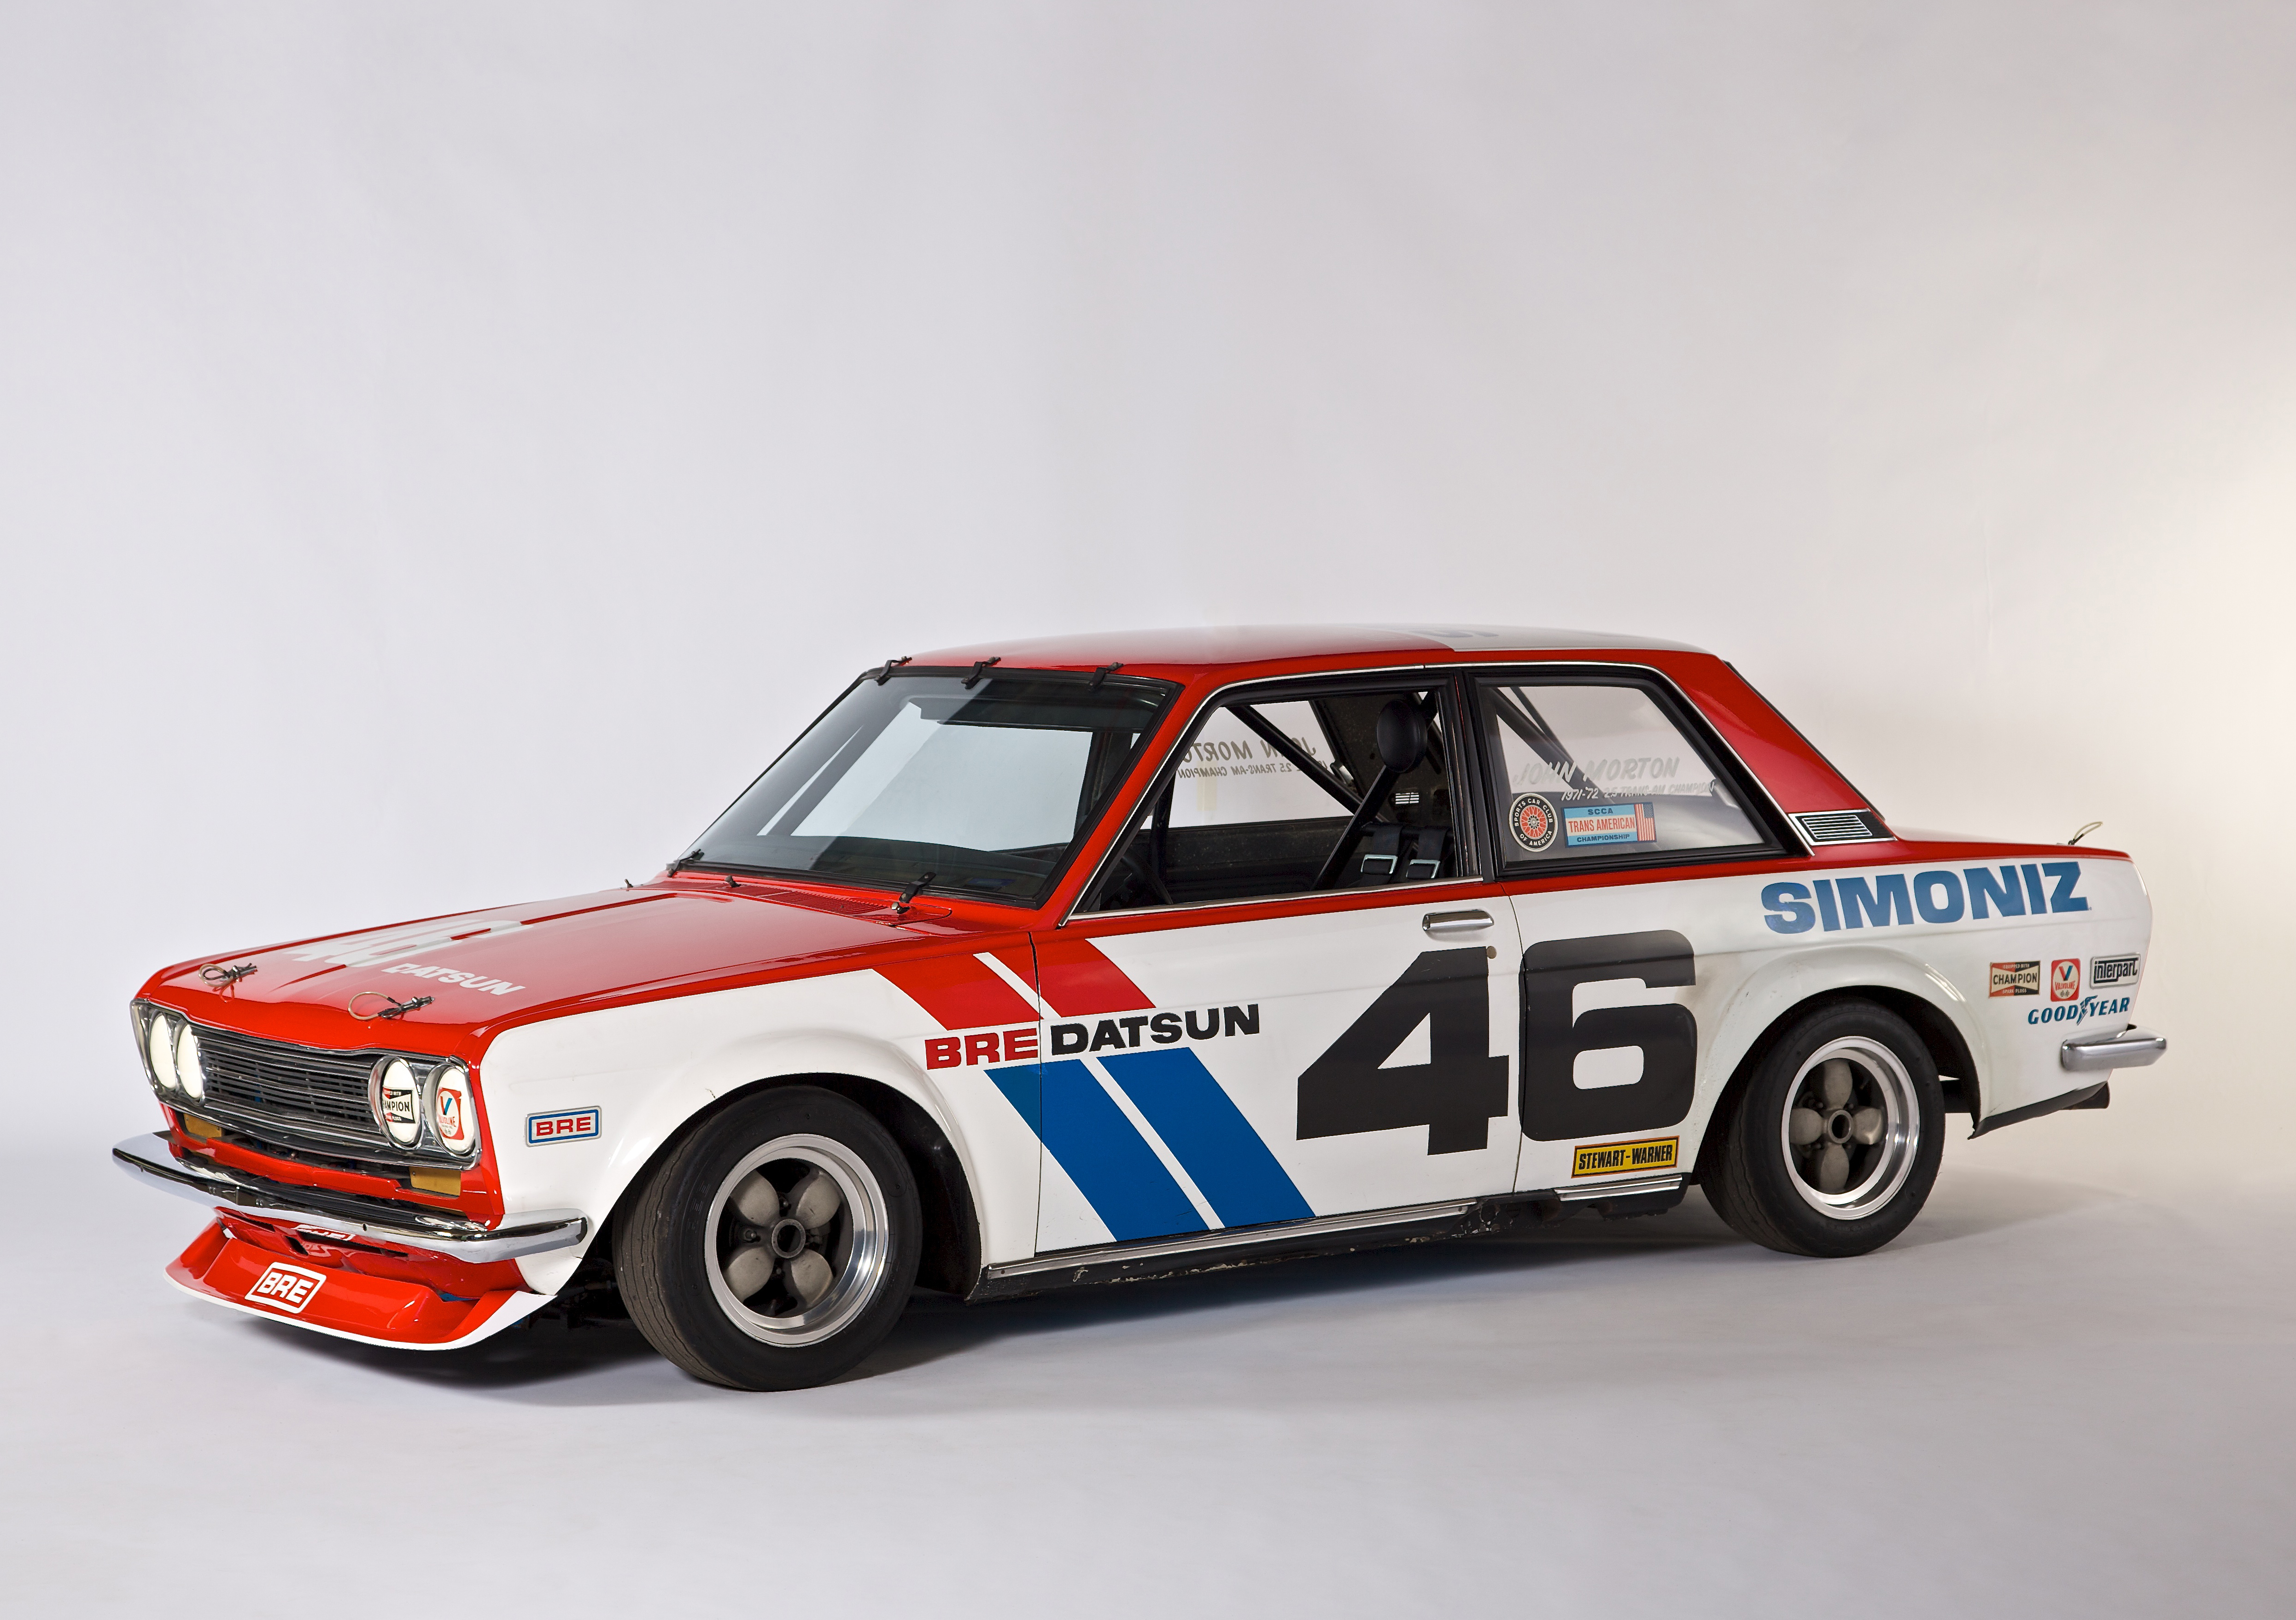 vintage Nissan and Datsun racecars